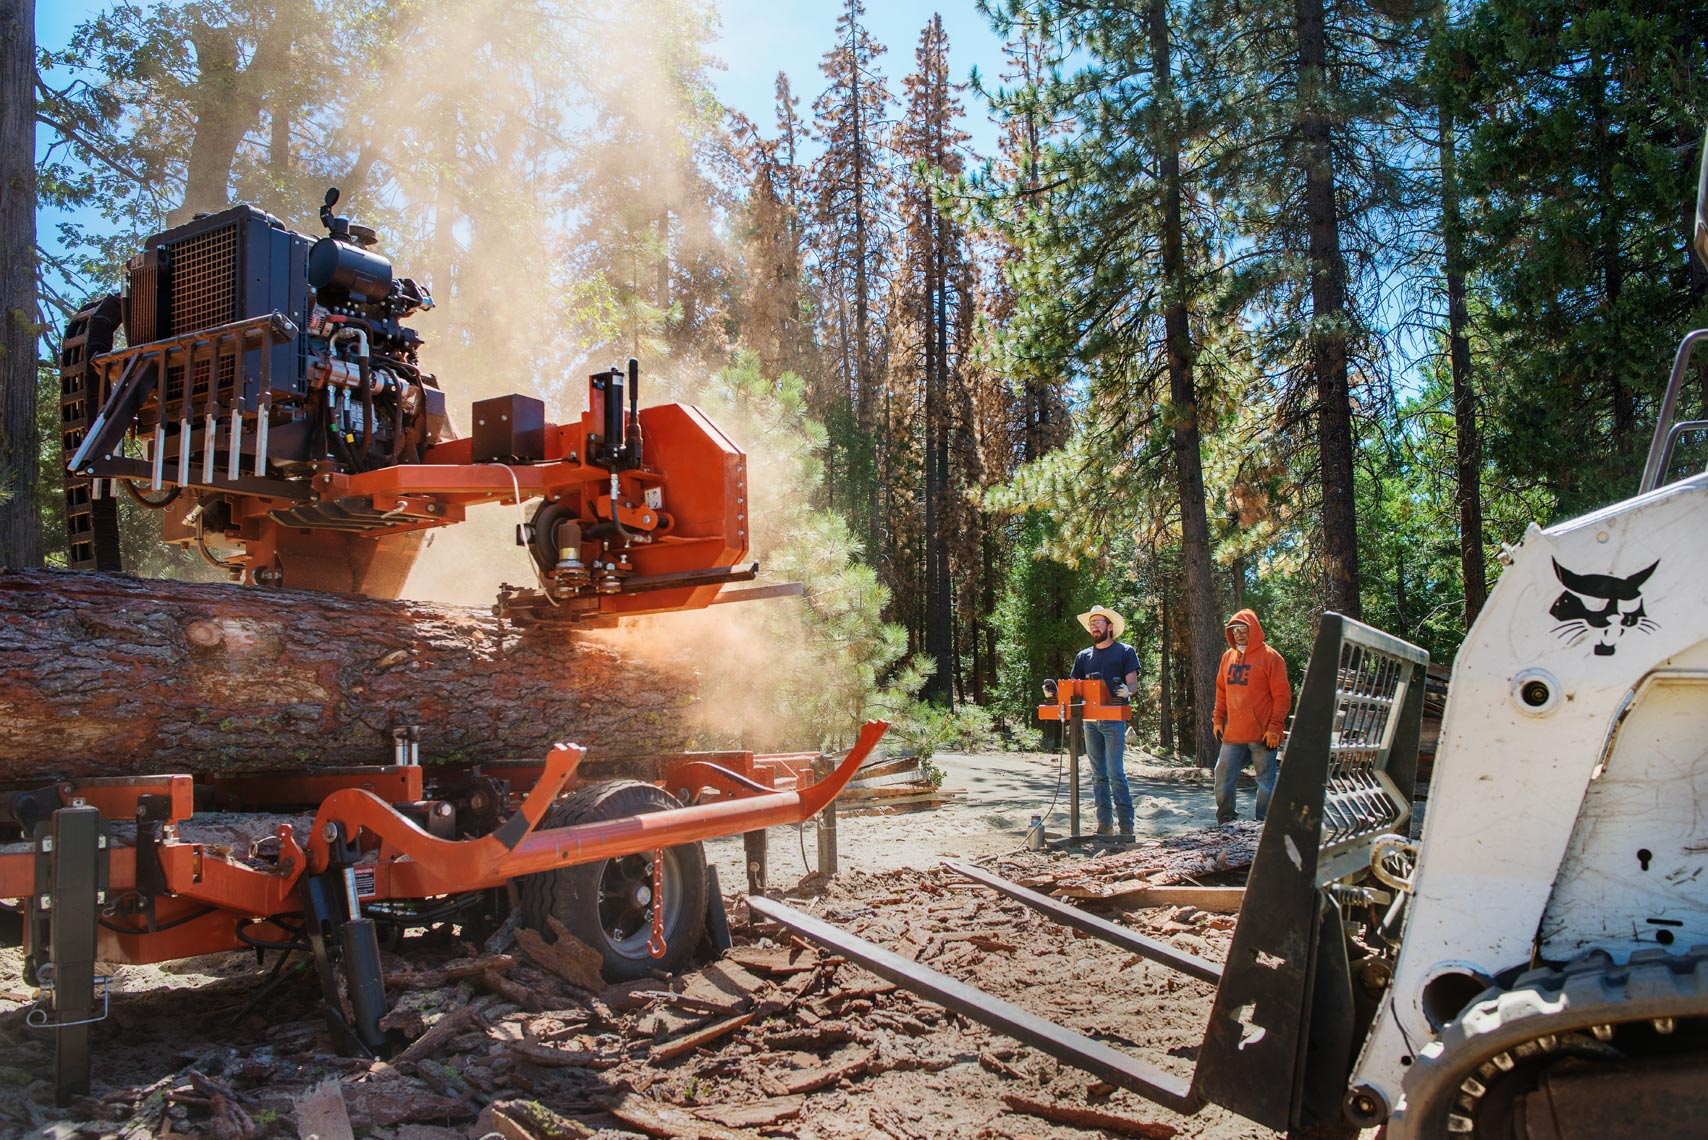 Woodmizer sawing through fresh cut logs